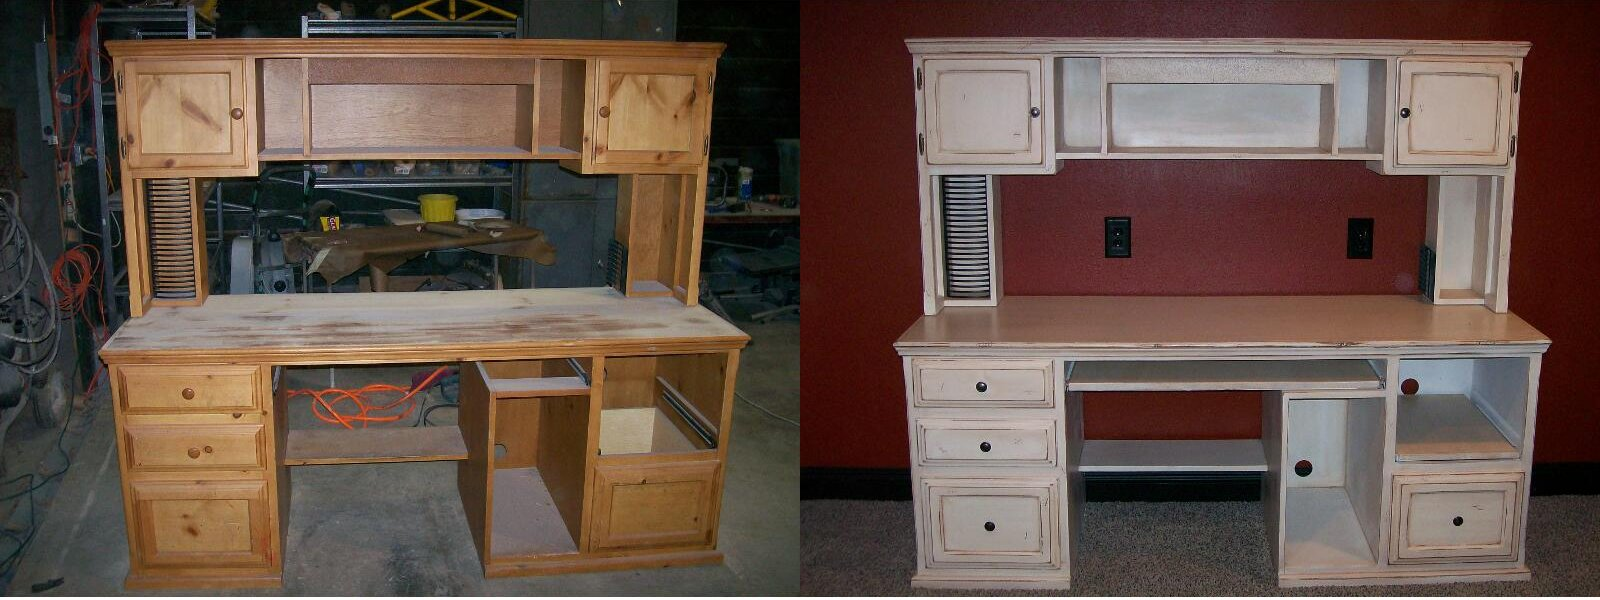 Before And After Telisas Furniture And Cabinet Refinishing Provo Orem Springville Payson